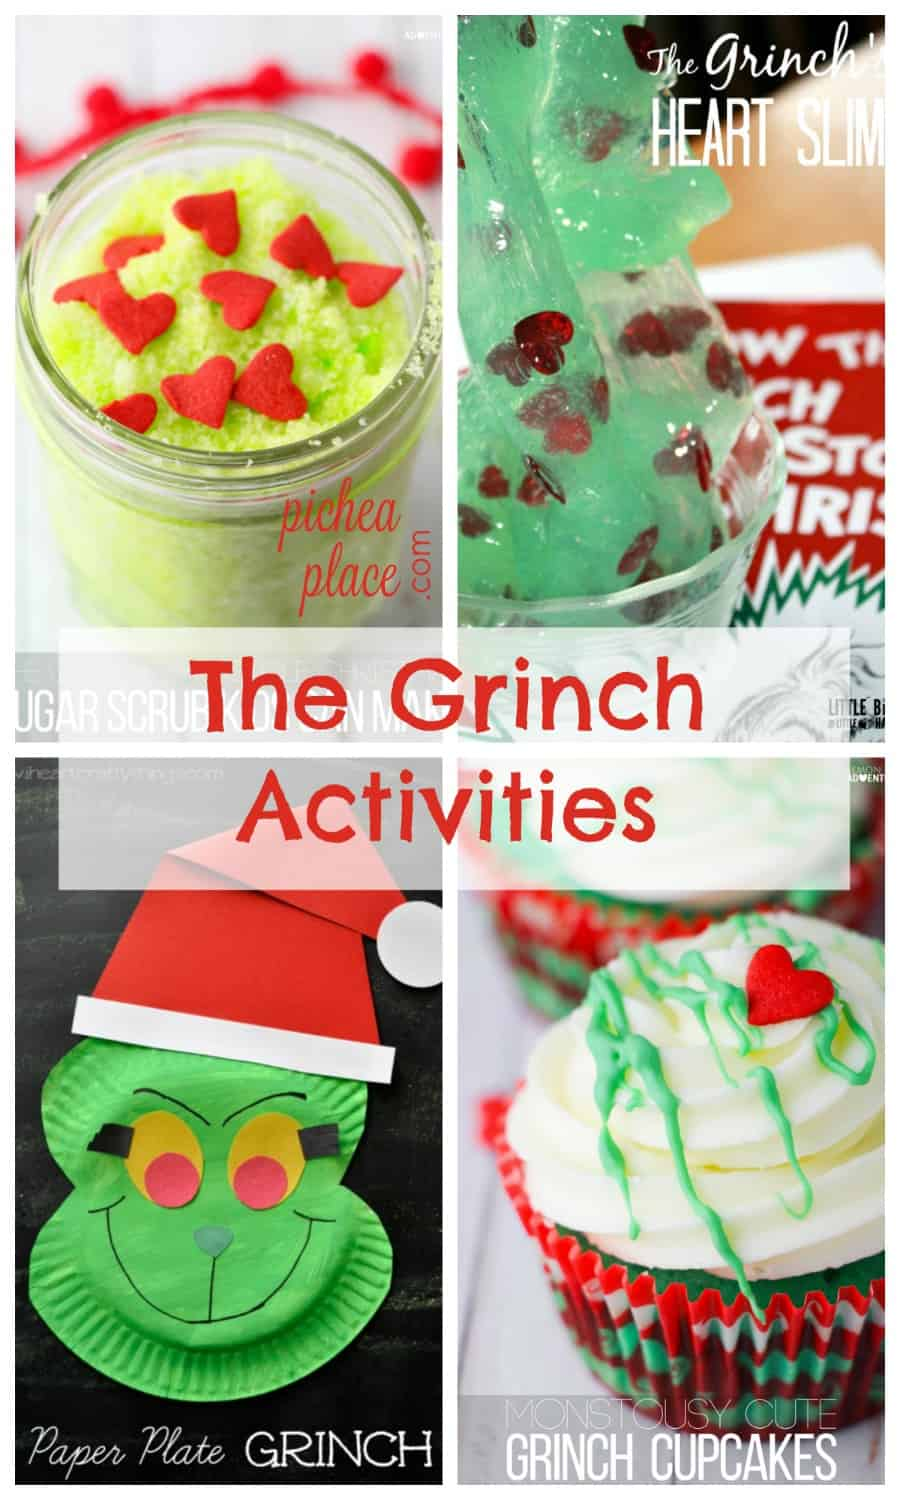 The Grinch activities for kids | Dr Seuss activities for kids